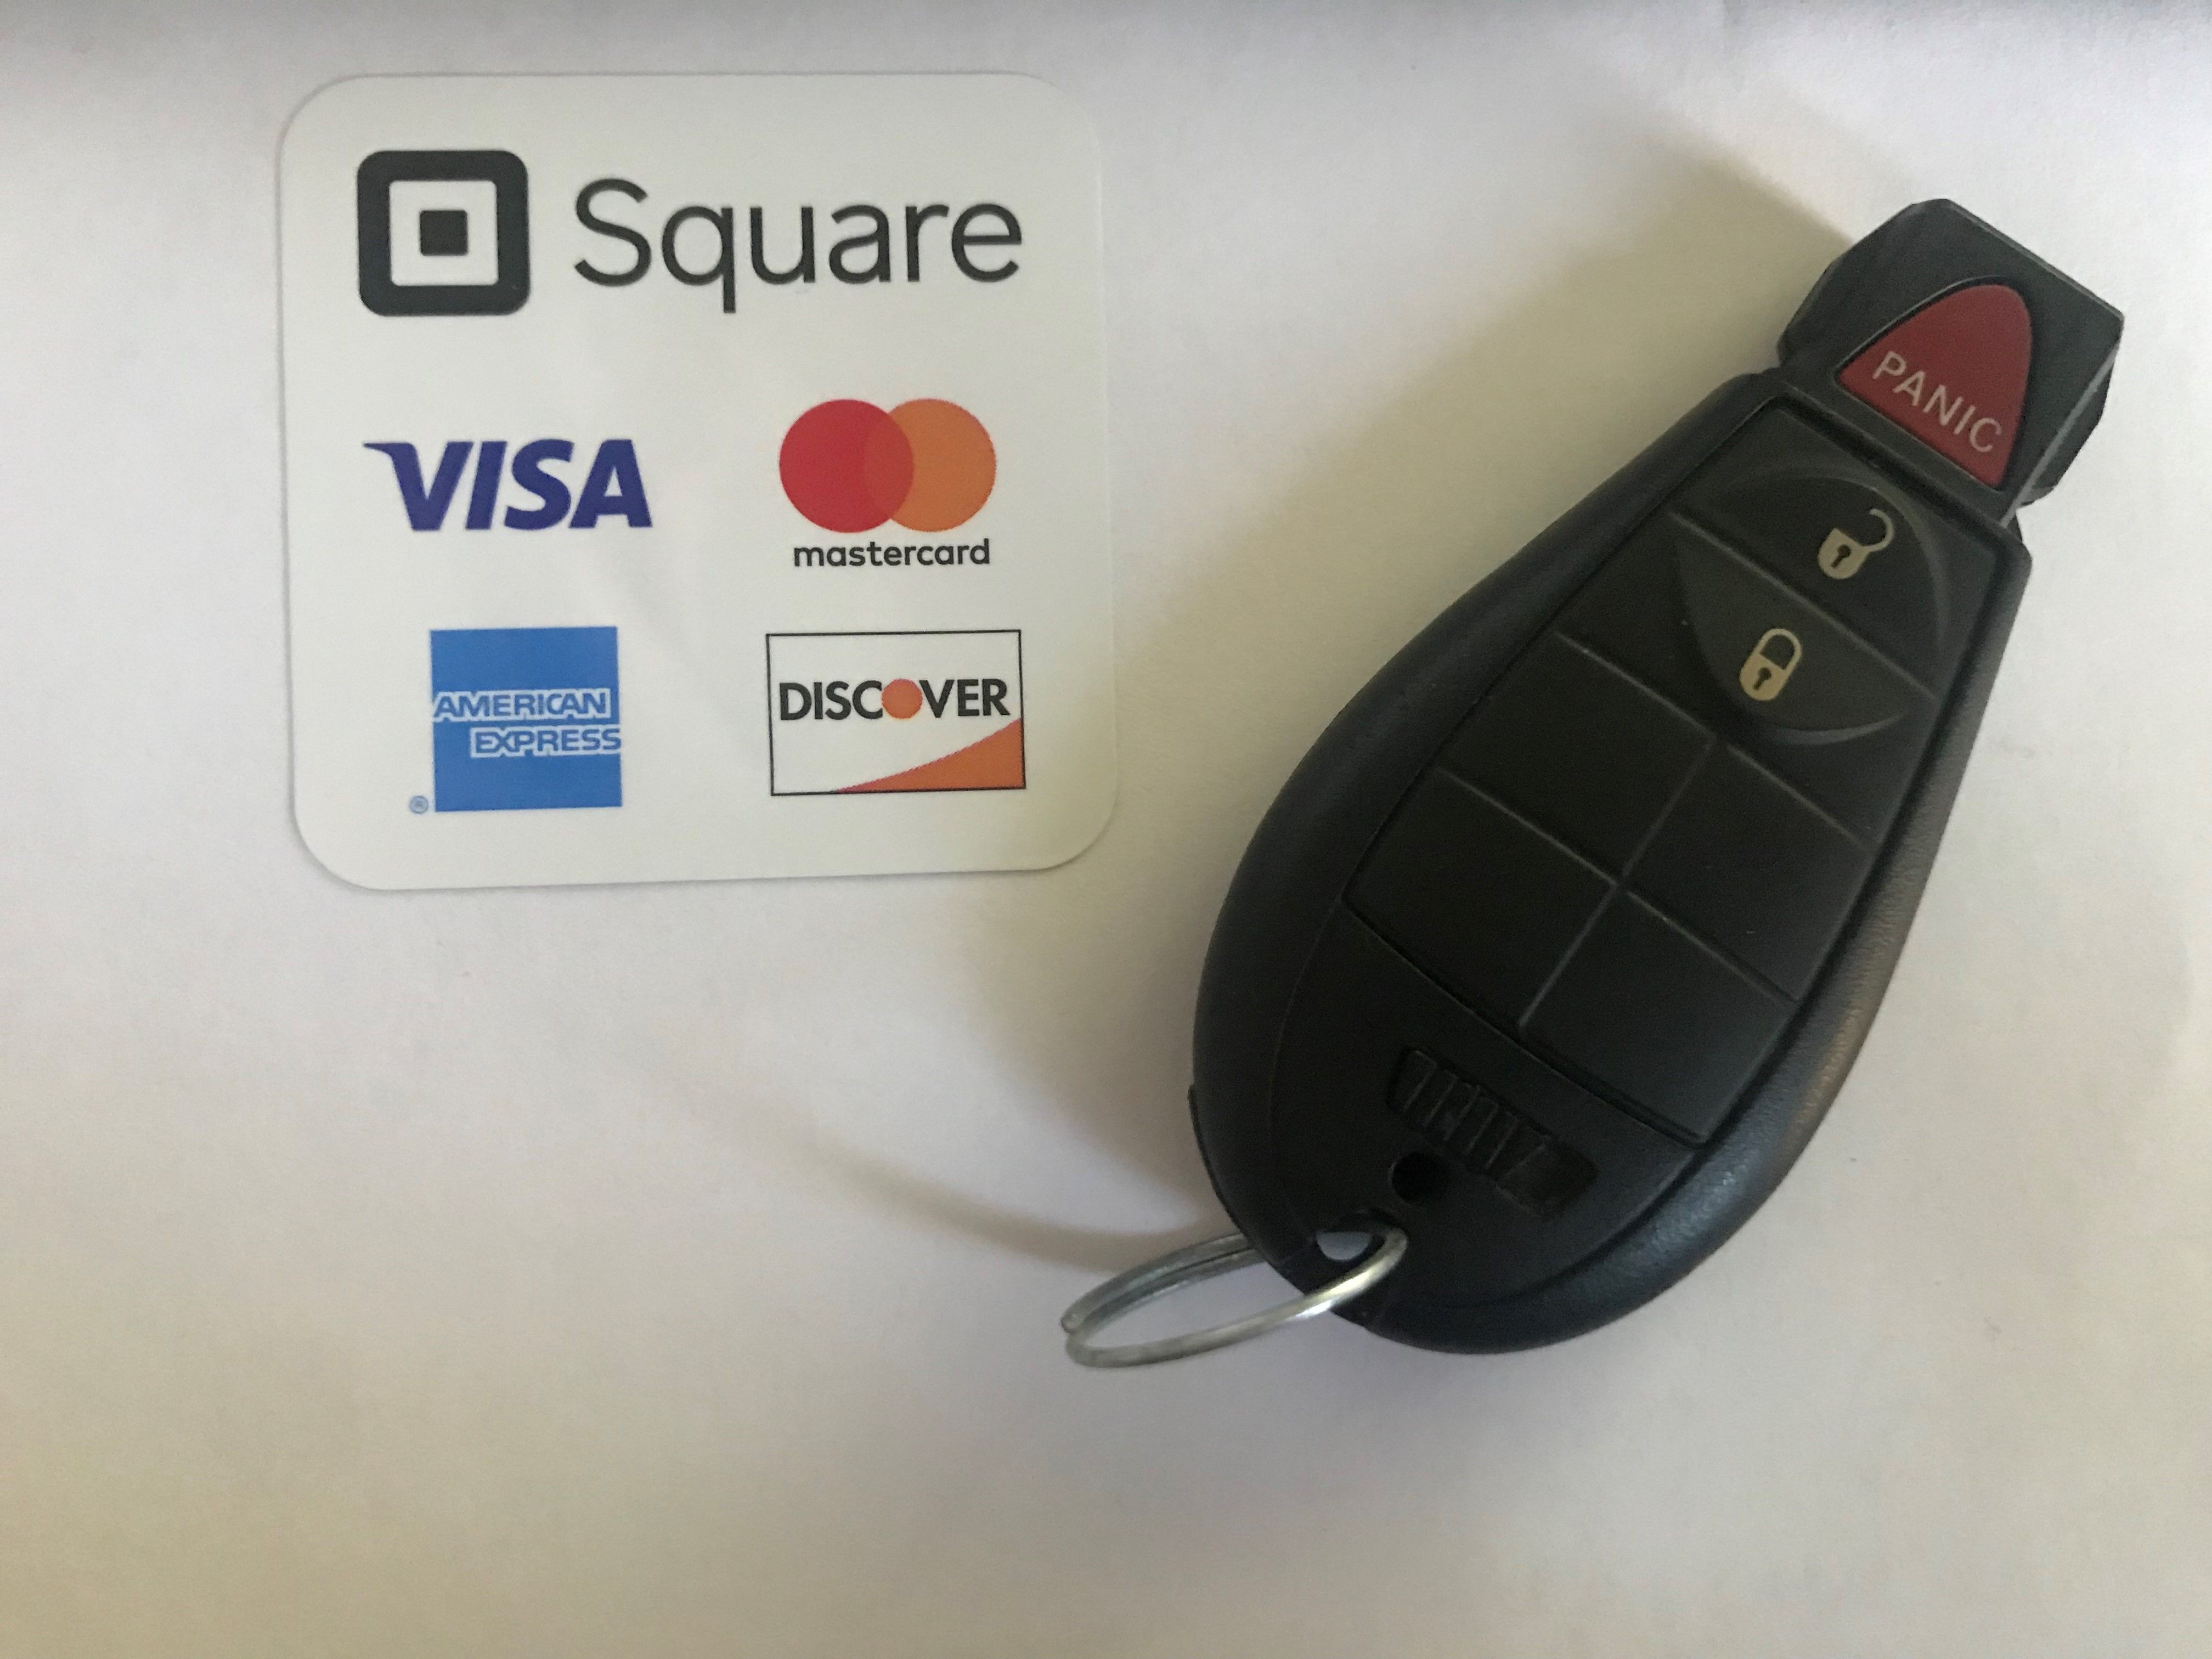 Key Fob An Active Wireless Electronic Device That Controls